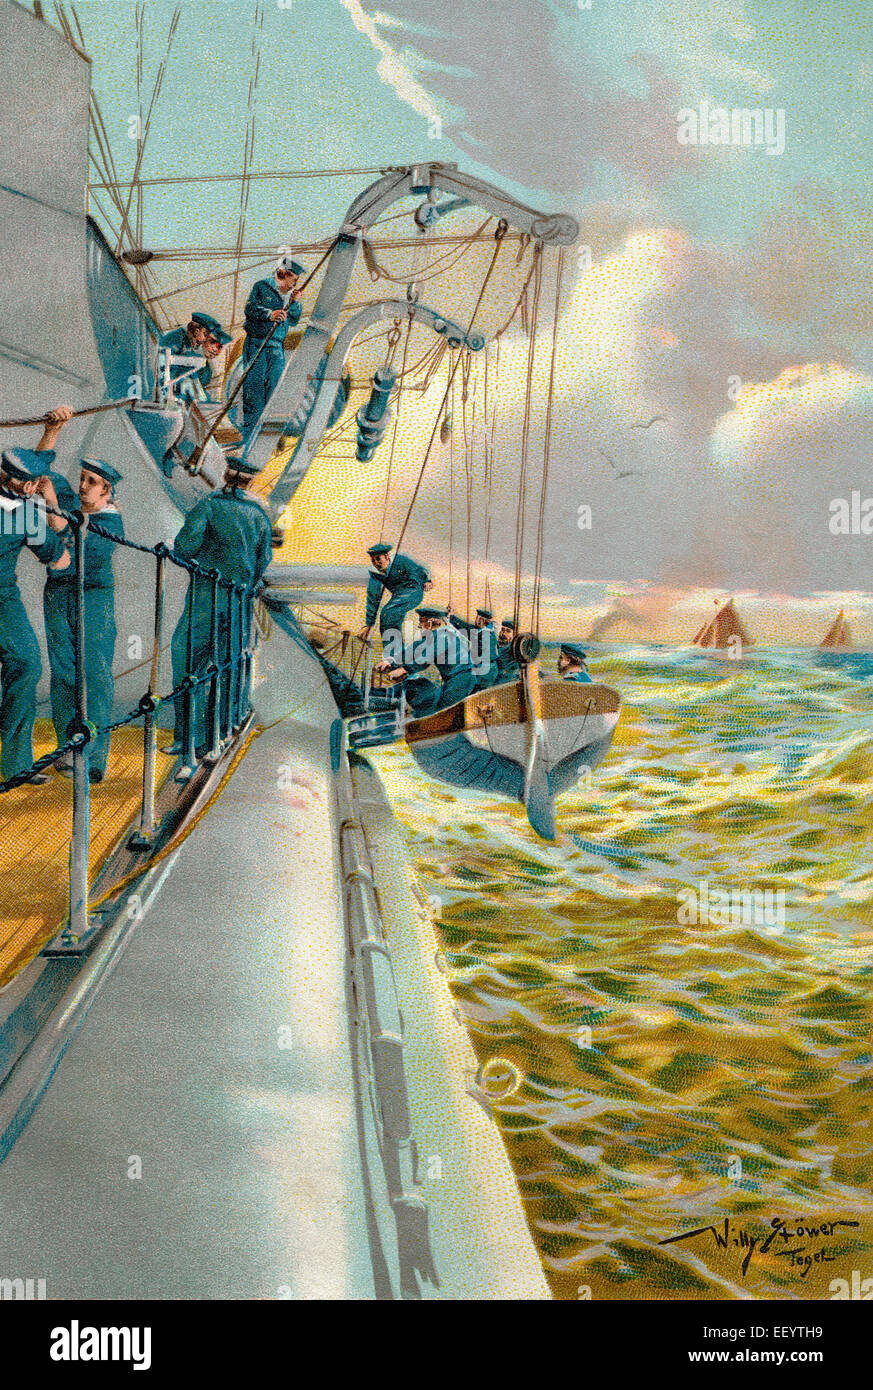 boat maneuvers with a lifeboat, c. 1900, Germany, Bootsmanöver auf See mit einem Rettungsboot, ca. 1900, Deutschland - Stock Image